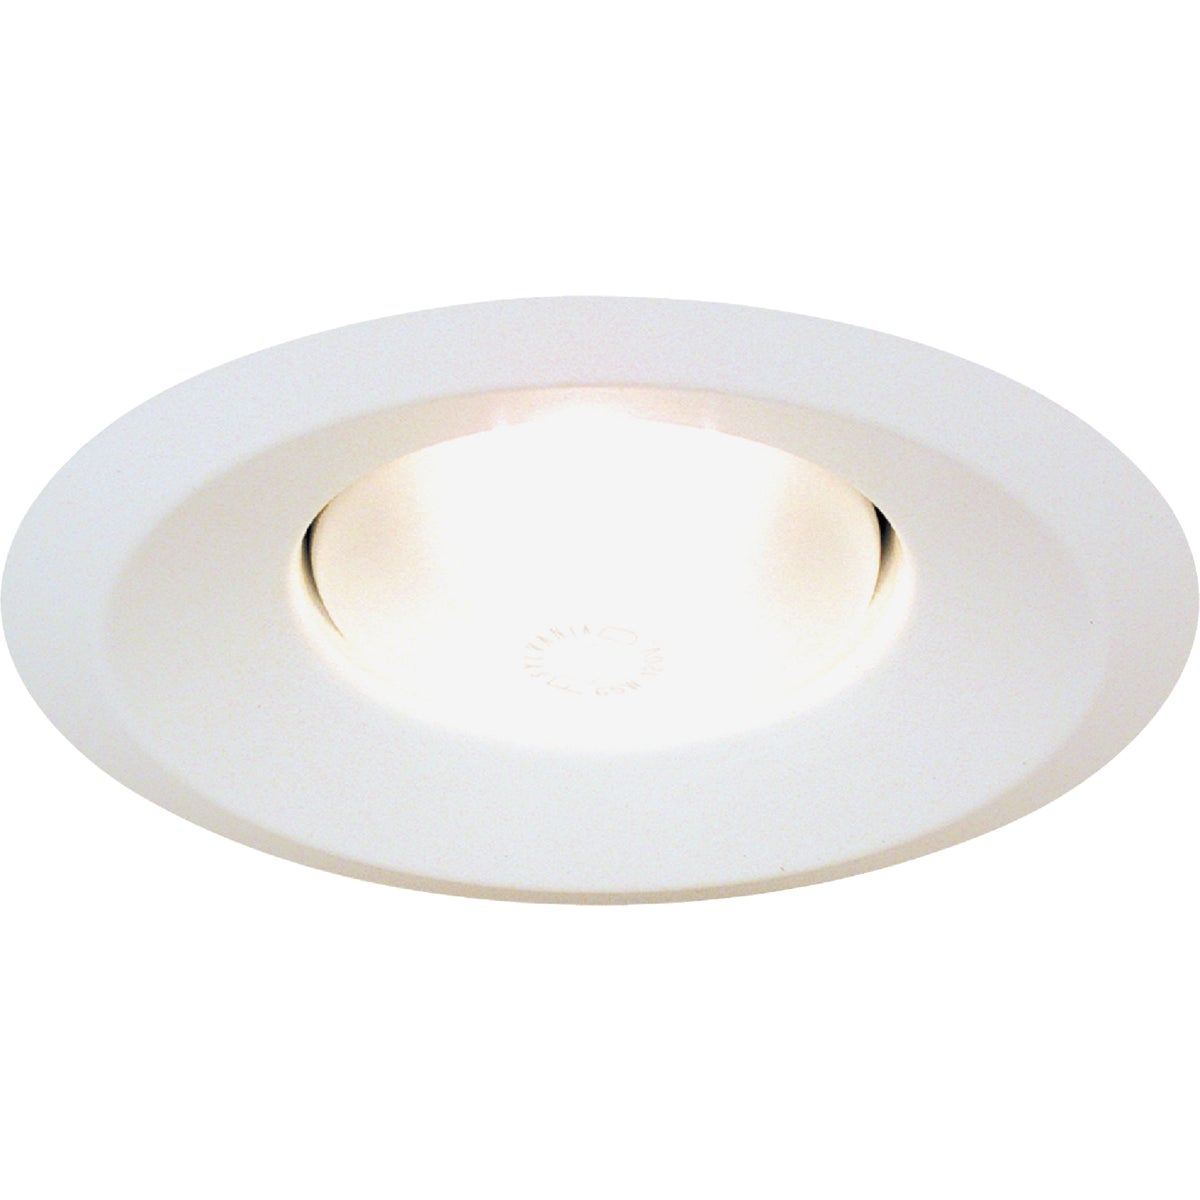 WHT RECESS FIXTURE TRIM - TRS30W by Philips Consumer Lum